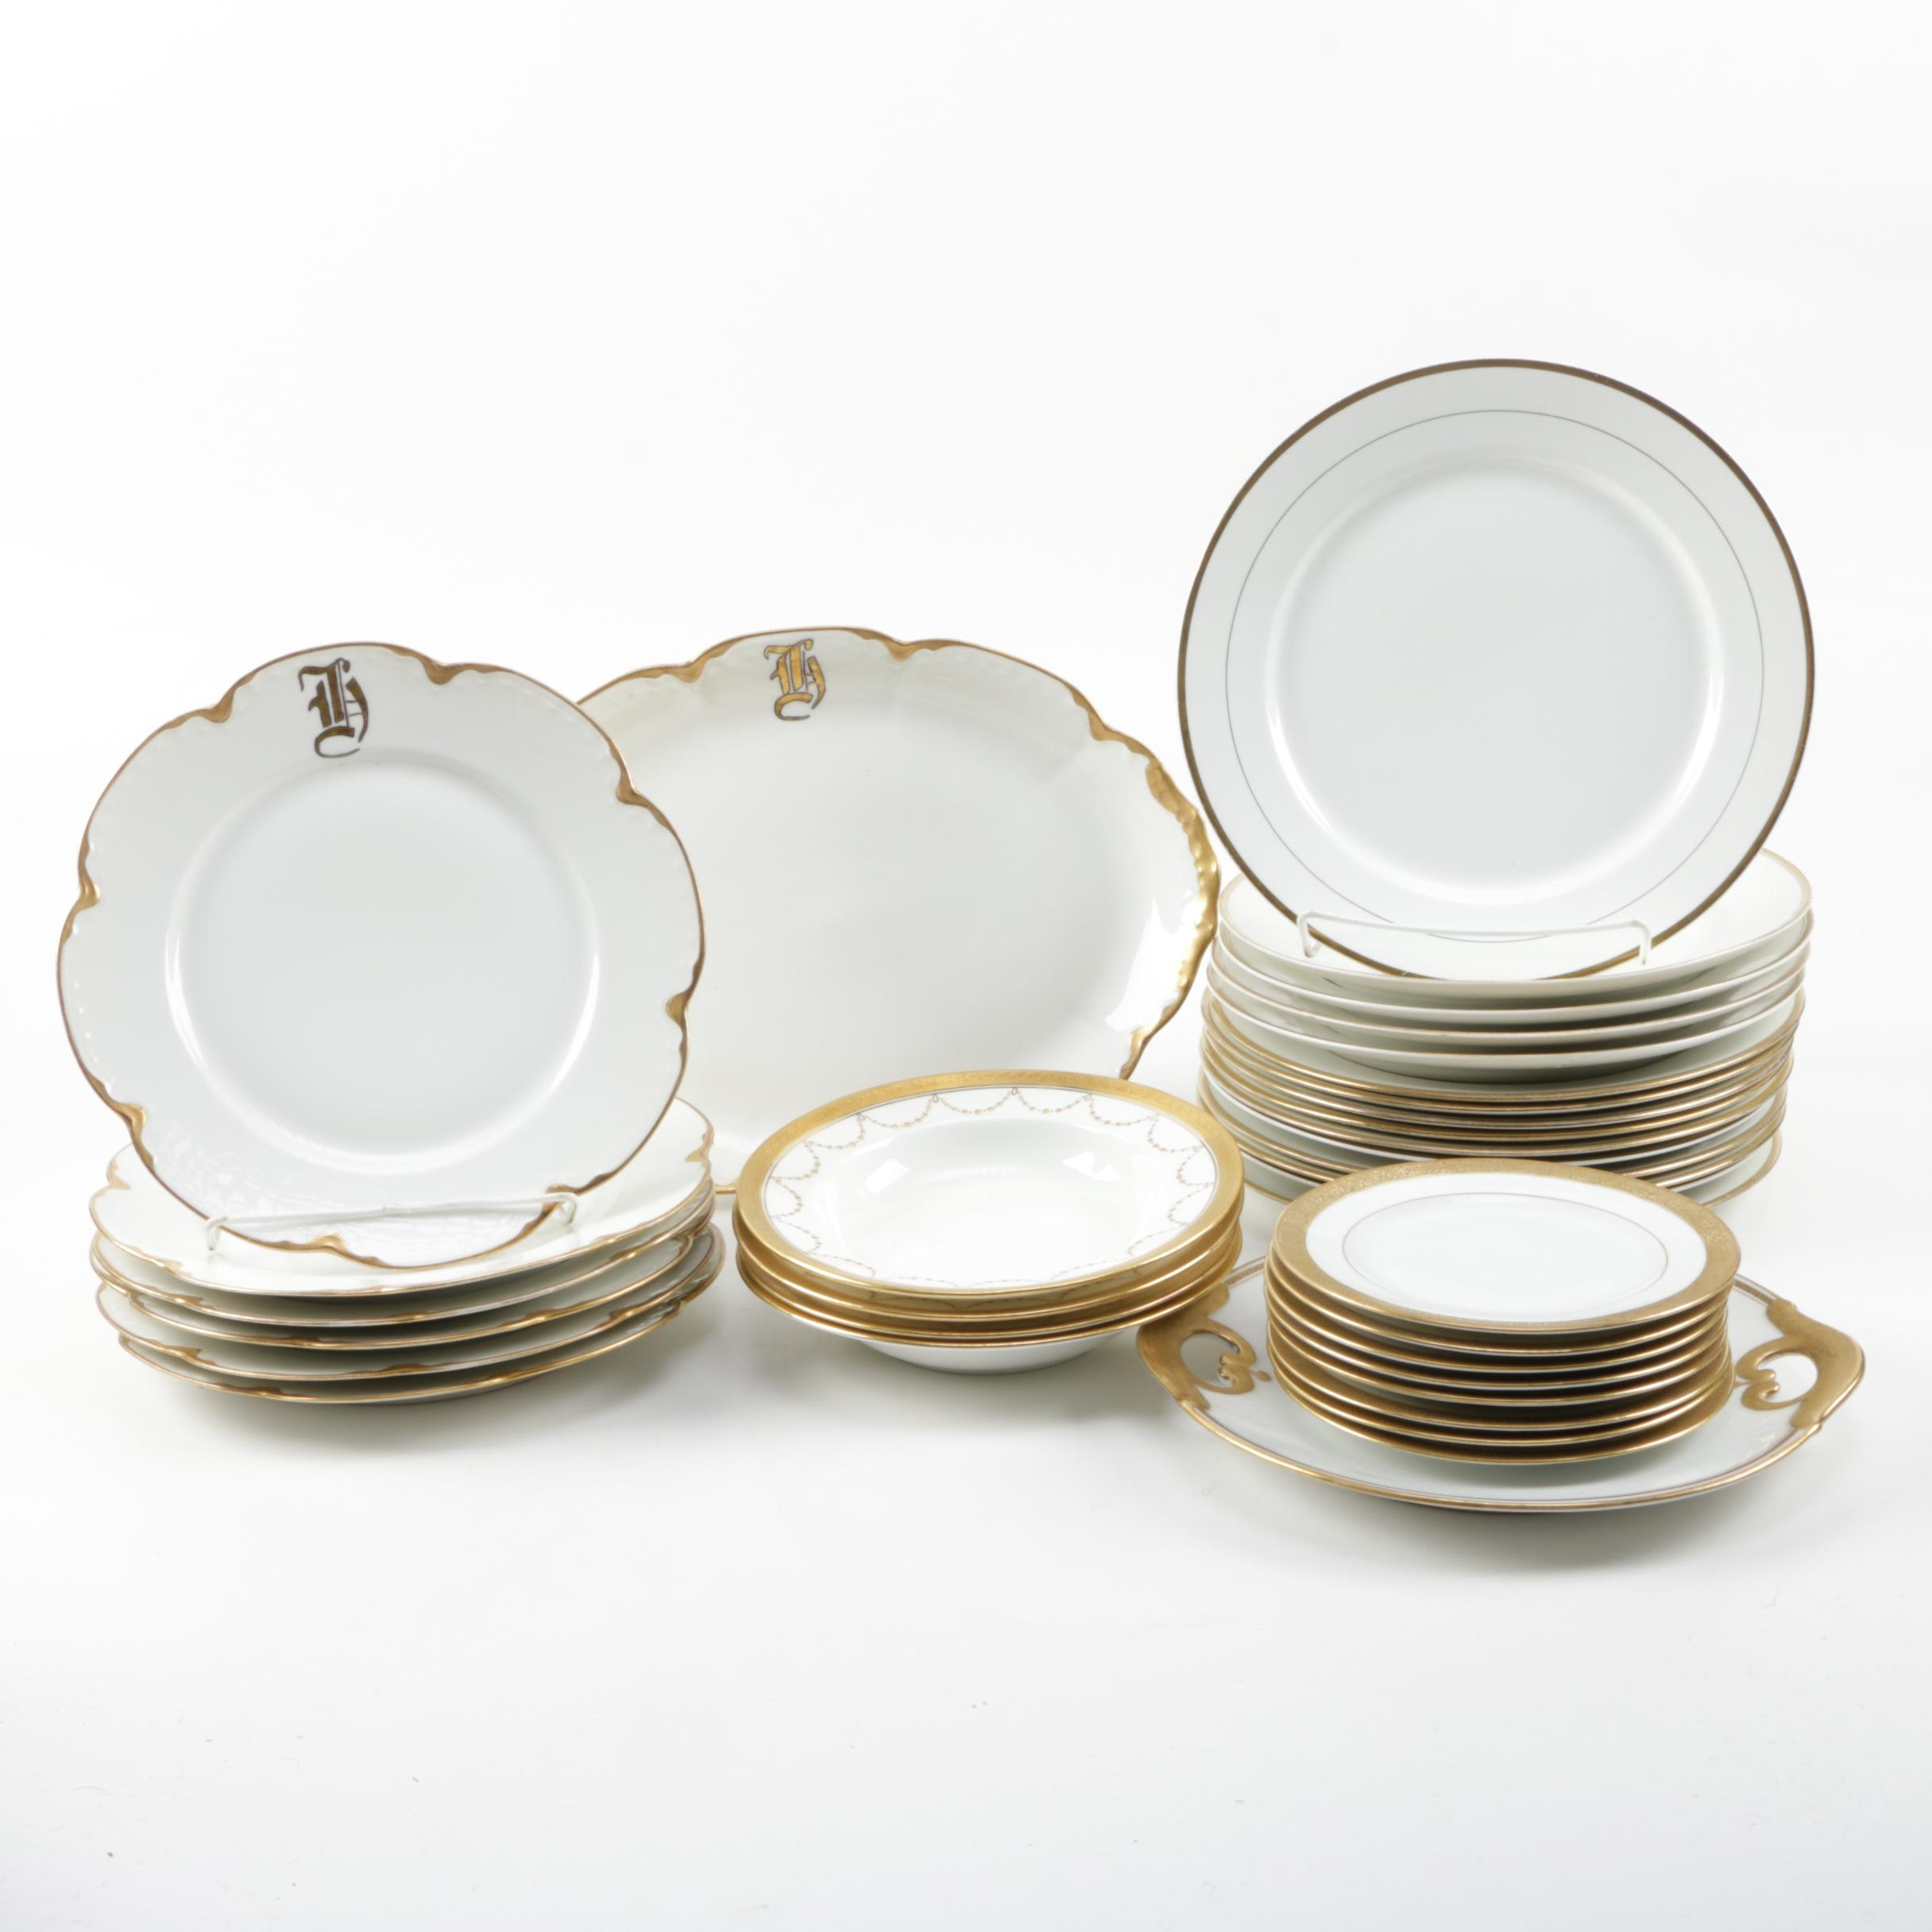 Collection of Gilt Trimmed Tableware